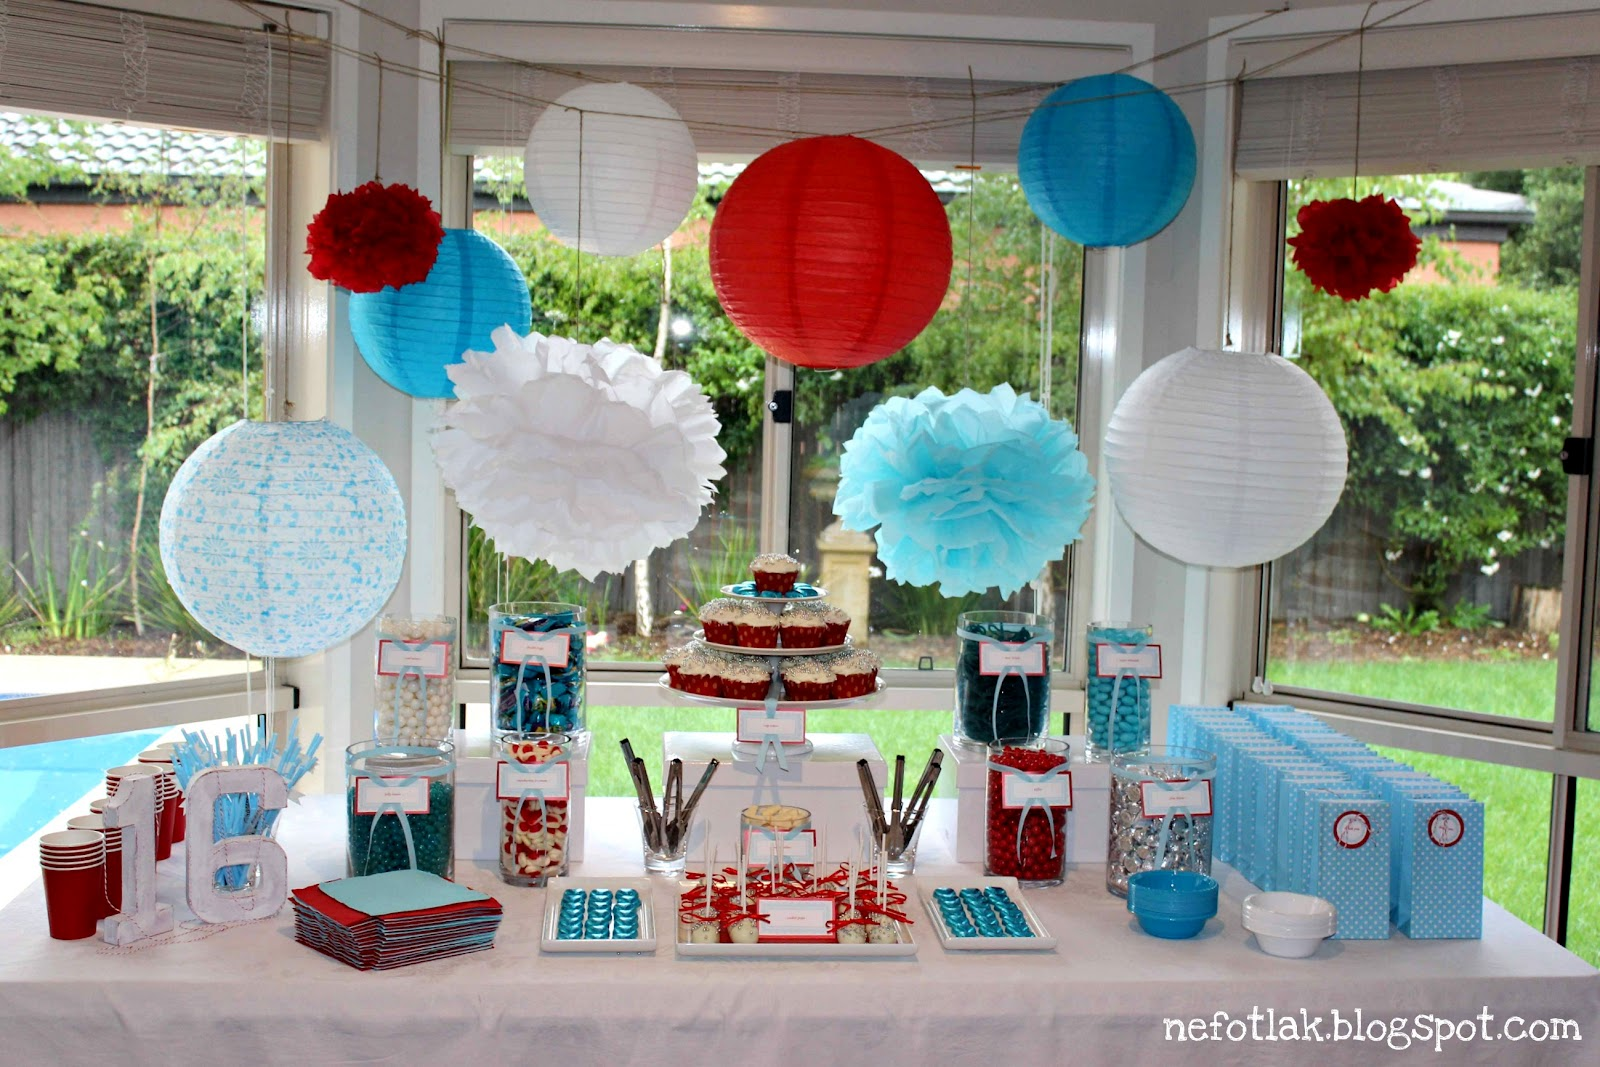 nefotlak 16th b 39 day party candy bar dessert table